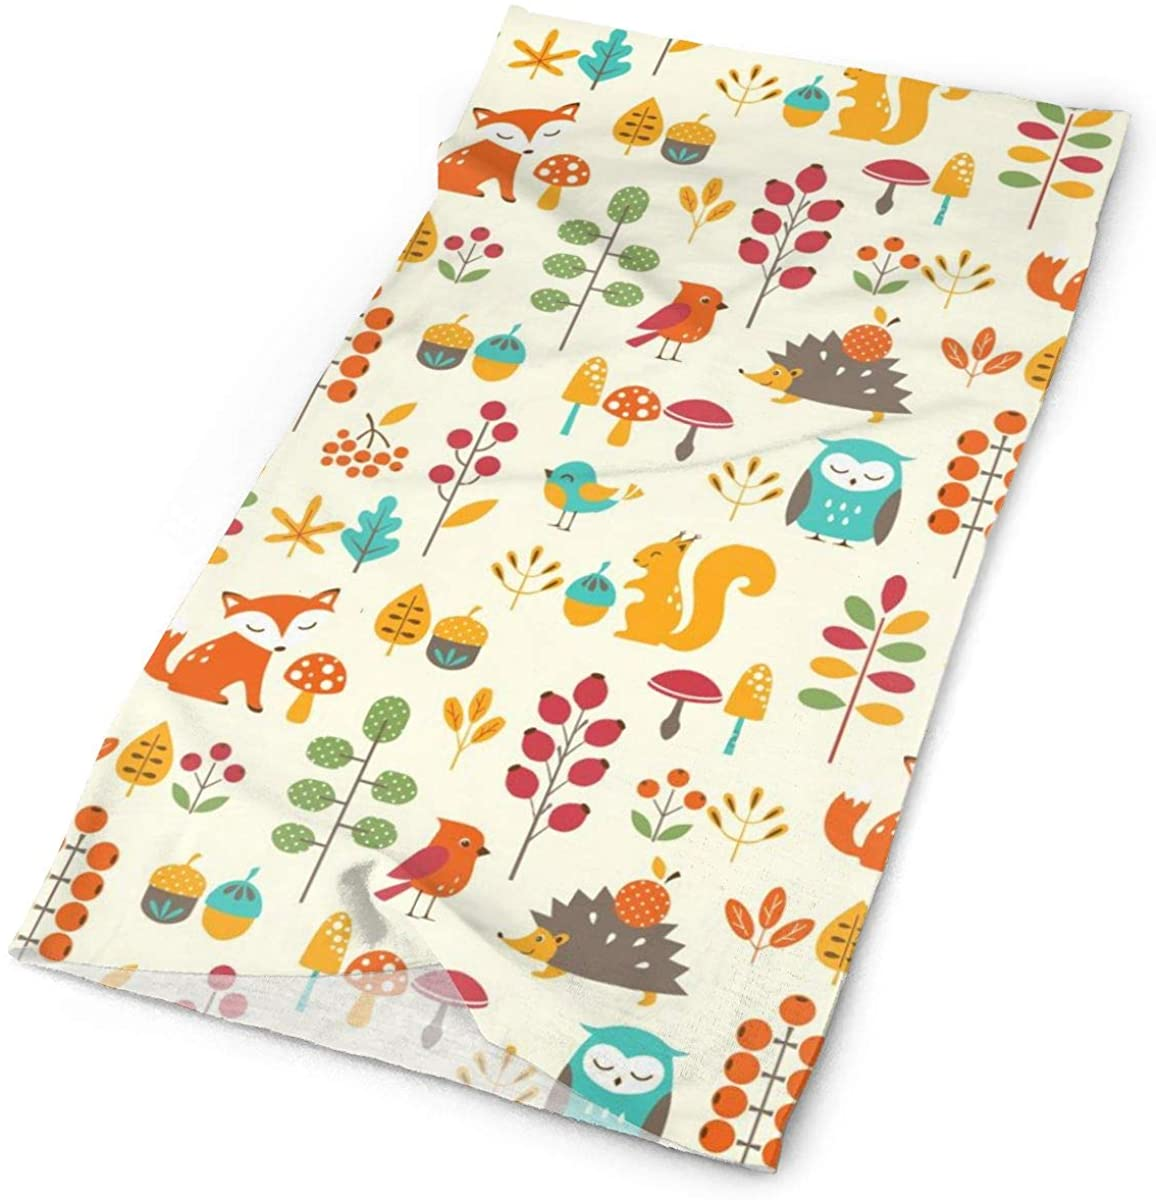 Cute Kids Autumn Pattern With Owl Fox Squirrel Birds Animal Leaves Artsy Print Face Mask Seamless Reusable Cloth Neck Gaiter Summer Cooling Bandanas Sun Uv Proof Scarf Headwear For Womens And Mens